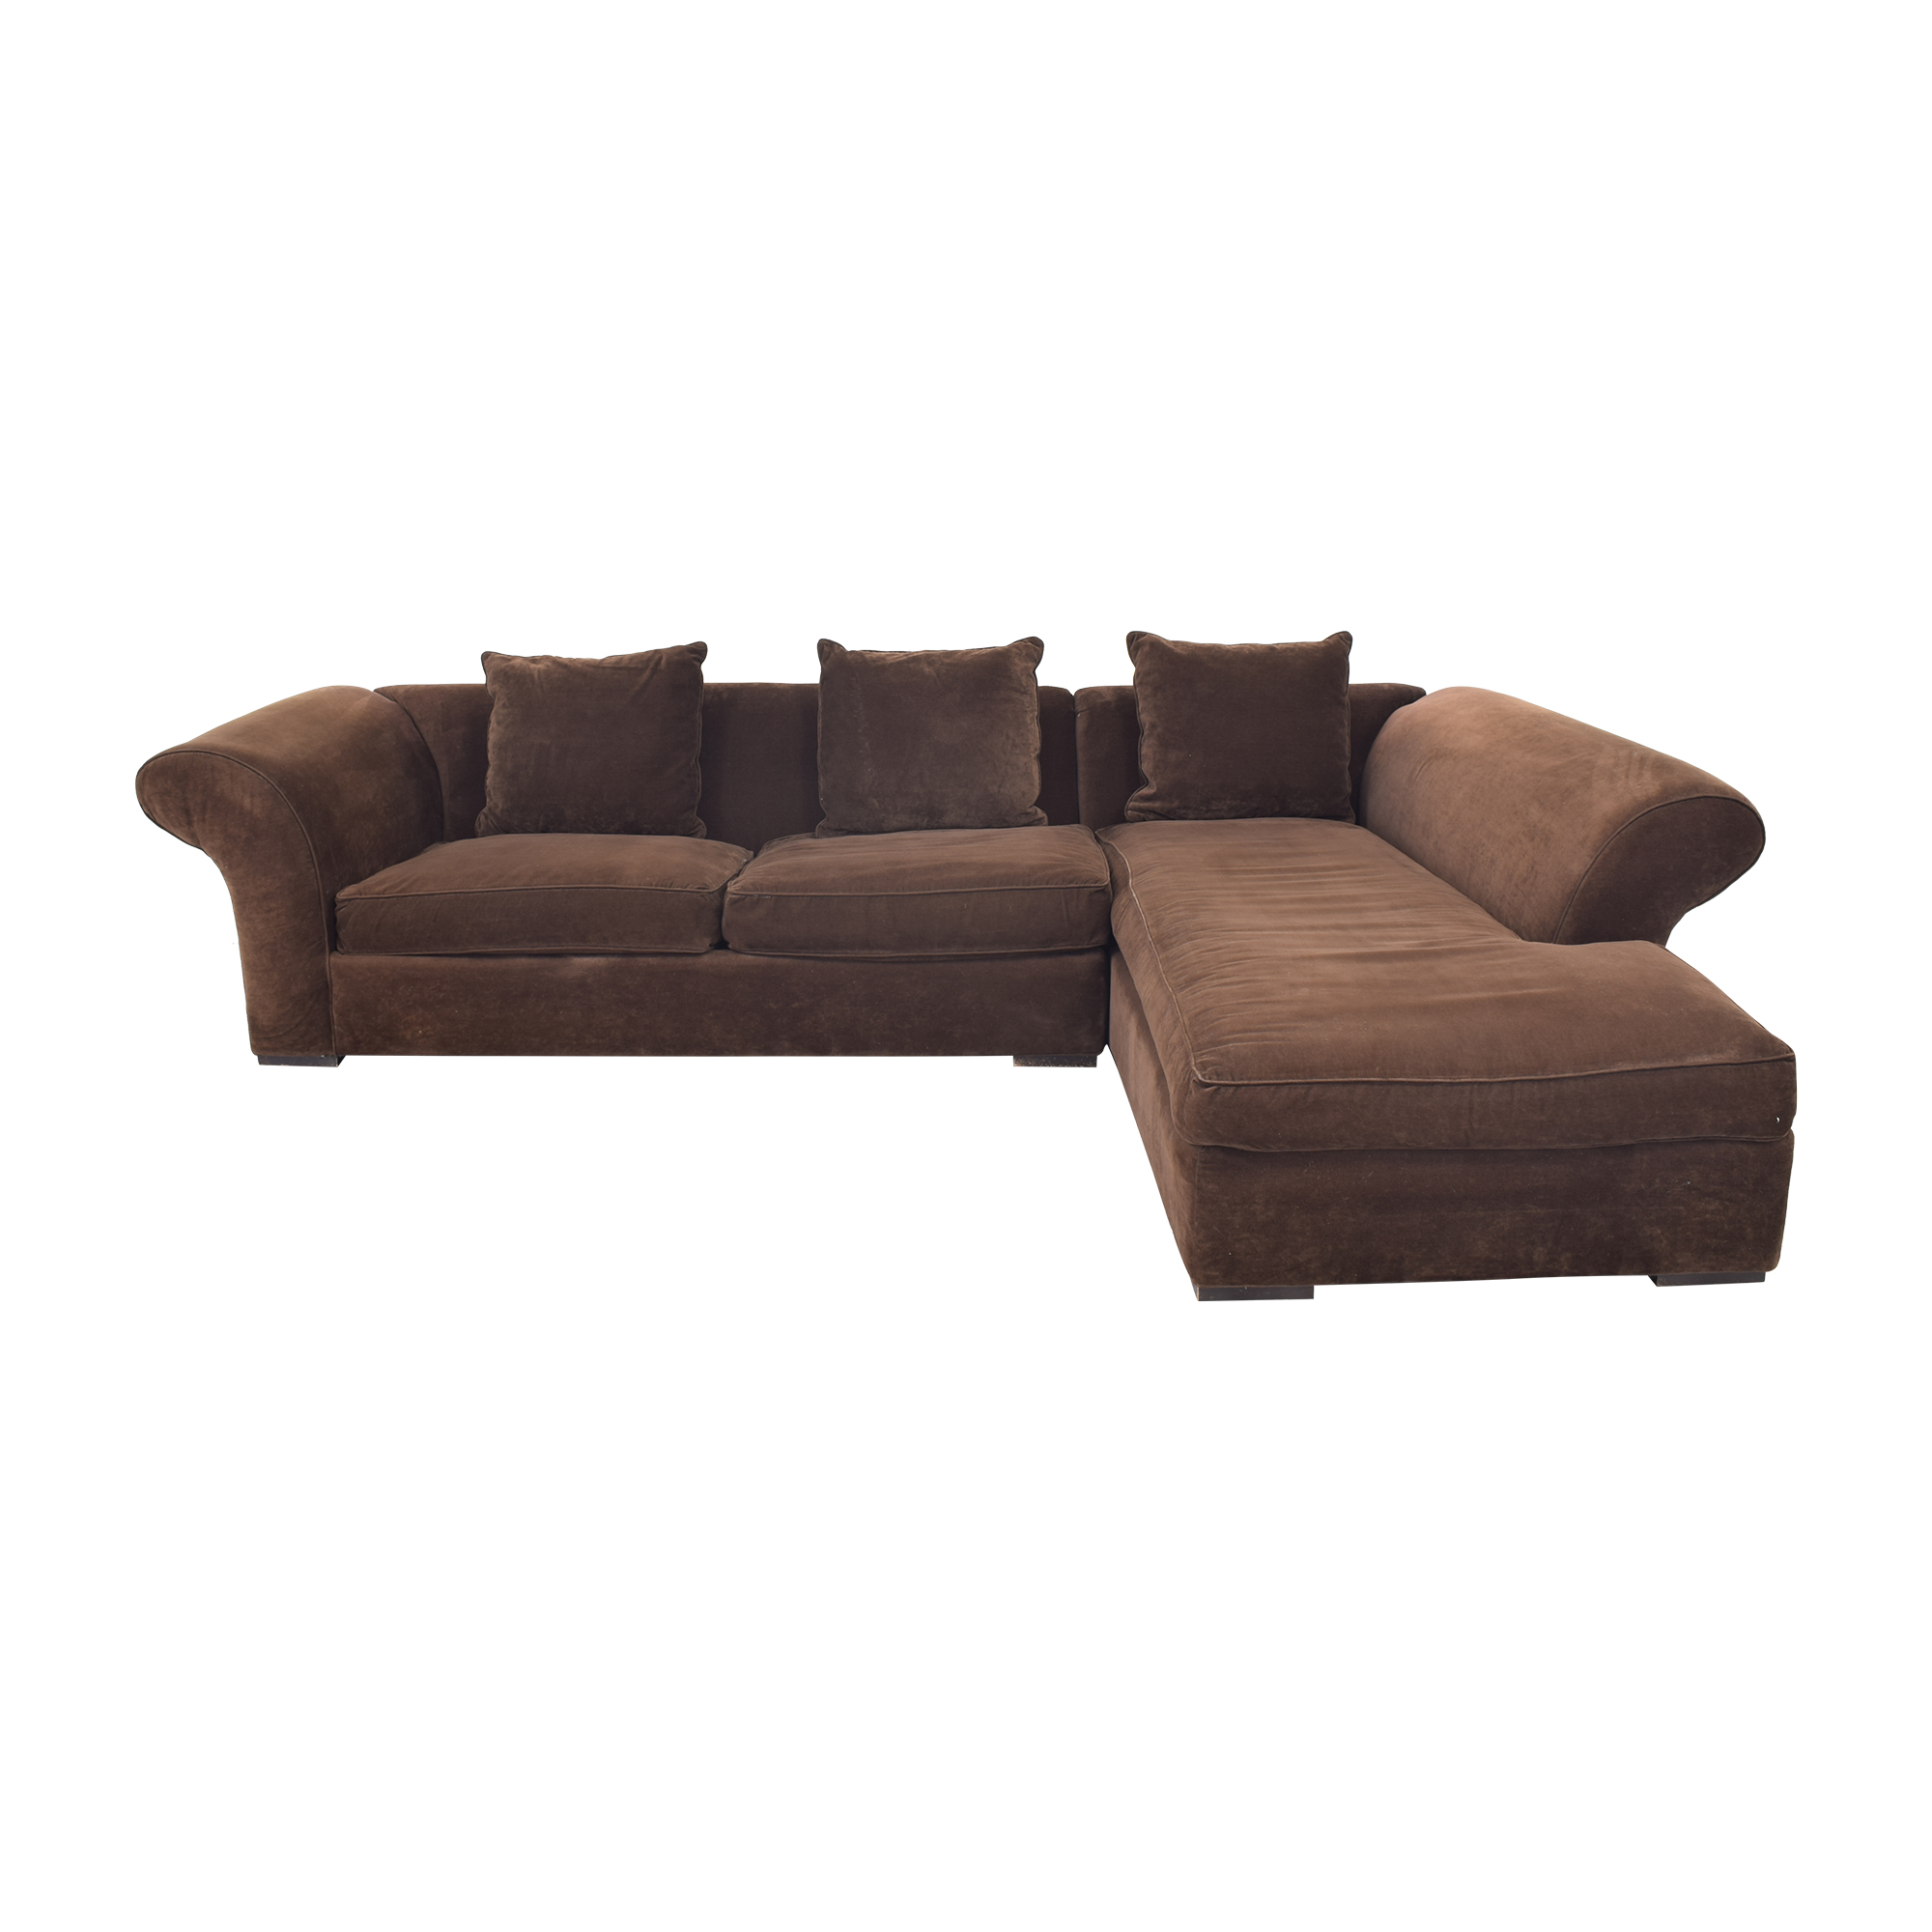 Rowe Furniture Sectional Sofa with Chaise / Sofas